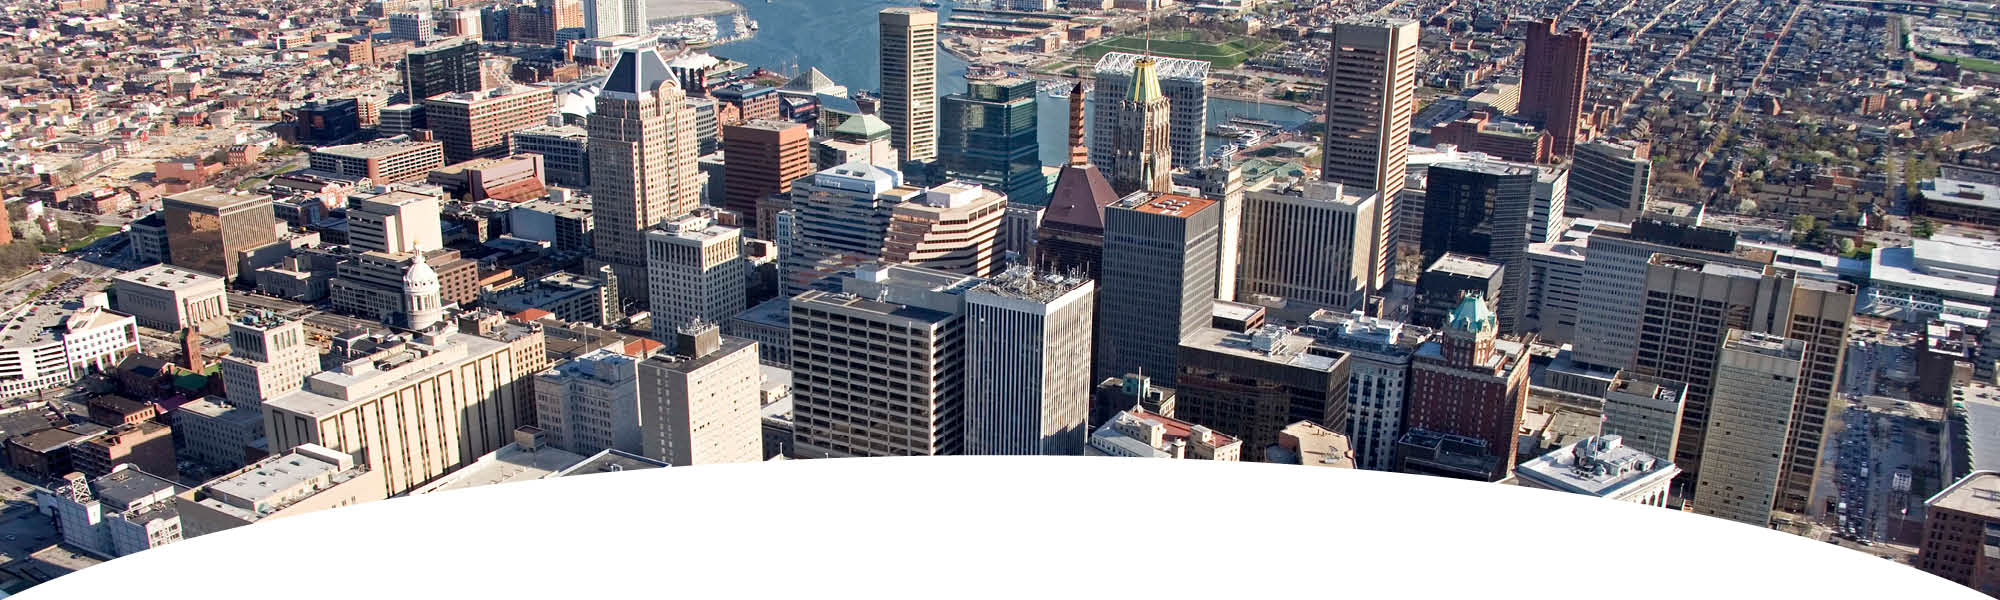 Baltimore Locations - Ariel view of downtown Baltimore